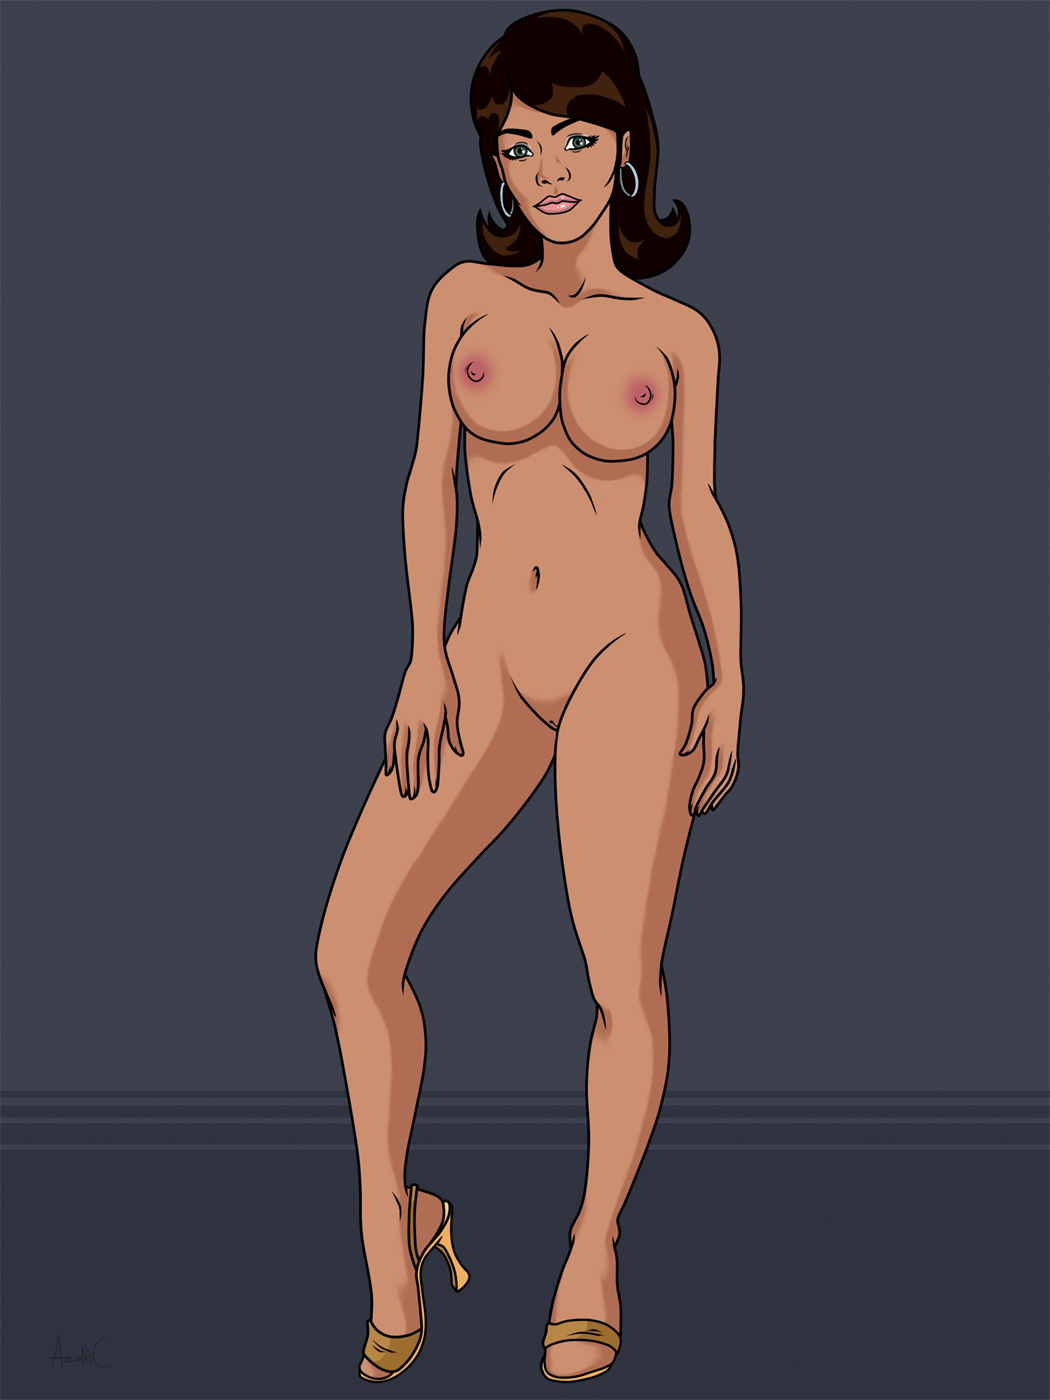 Archer cartoon nude girls